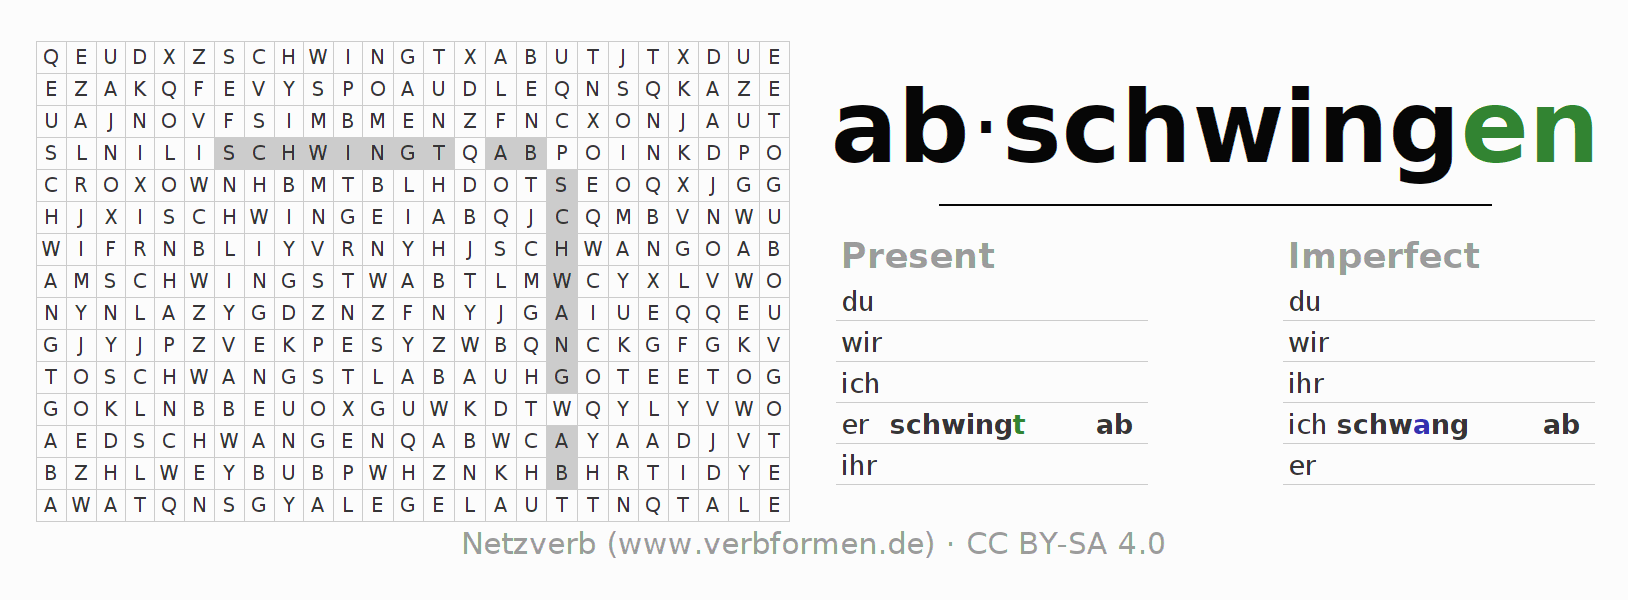 Word search puzzle for the conjugation of the verb abschwingen